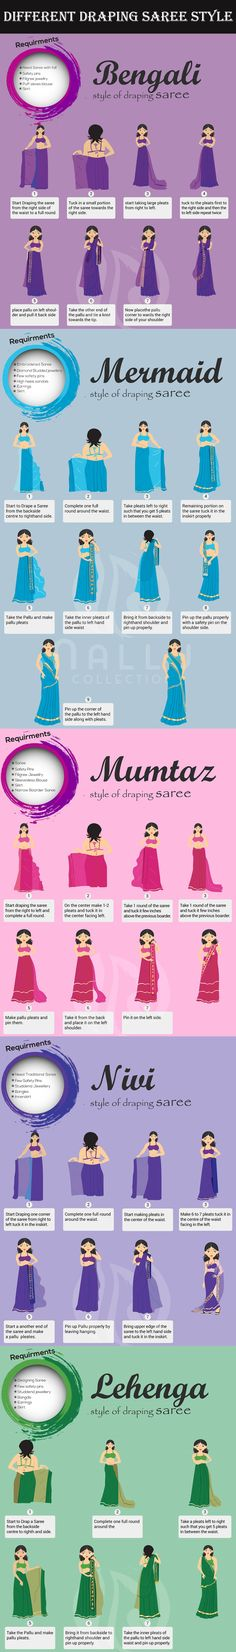 Fashion infographic & data visualisation 11 Casual Ways to drape a Saree Infographic Description Infographics of Different Saree Draping Styles – Infographic Source – Saree Draping Styles, Drape Sarees, Saree Styles, Blouse Styles, Indian Attire, Indian Wear, Indian Dresses, Indian Outfits, Indian Style Clothes